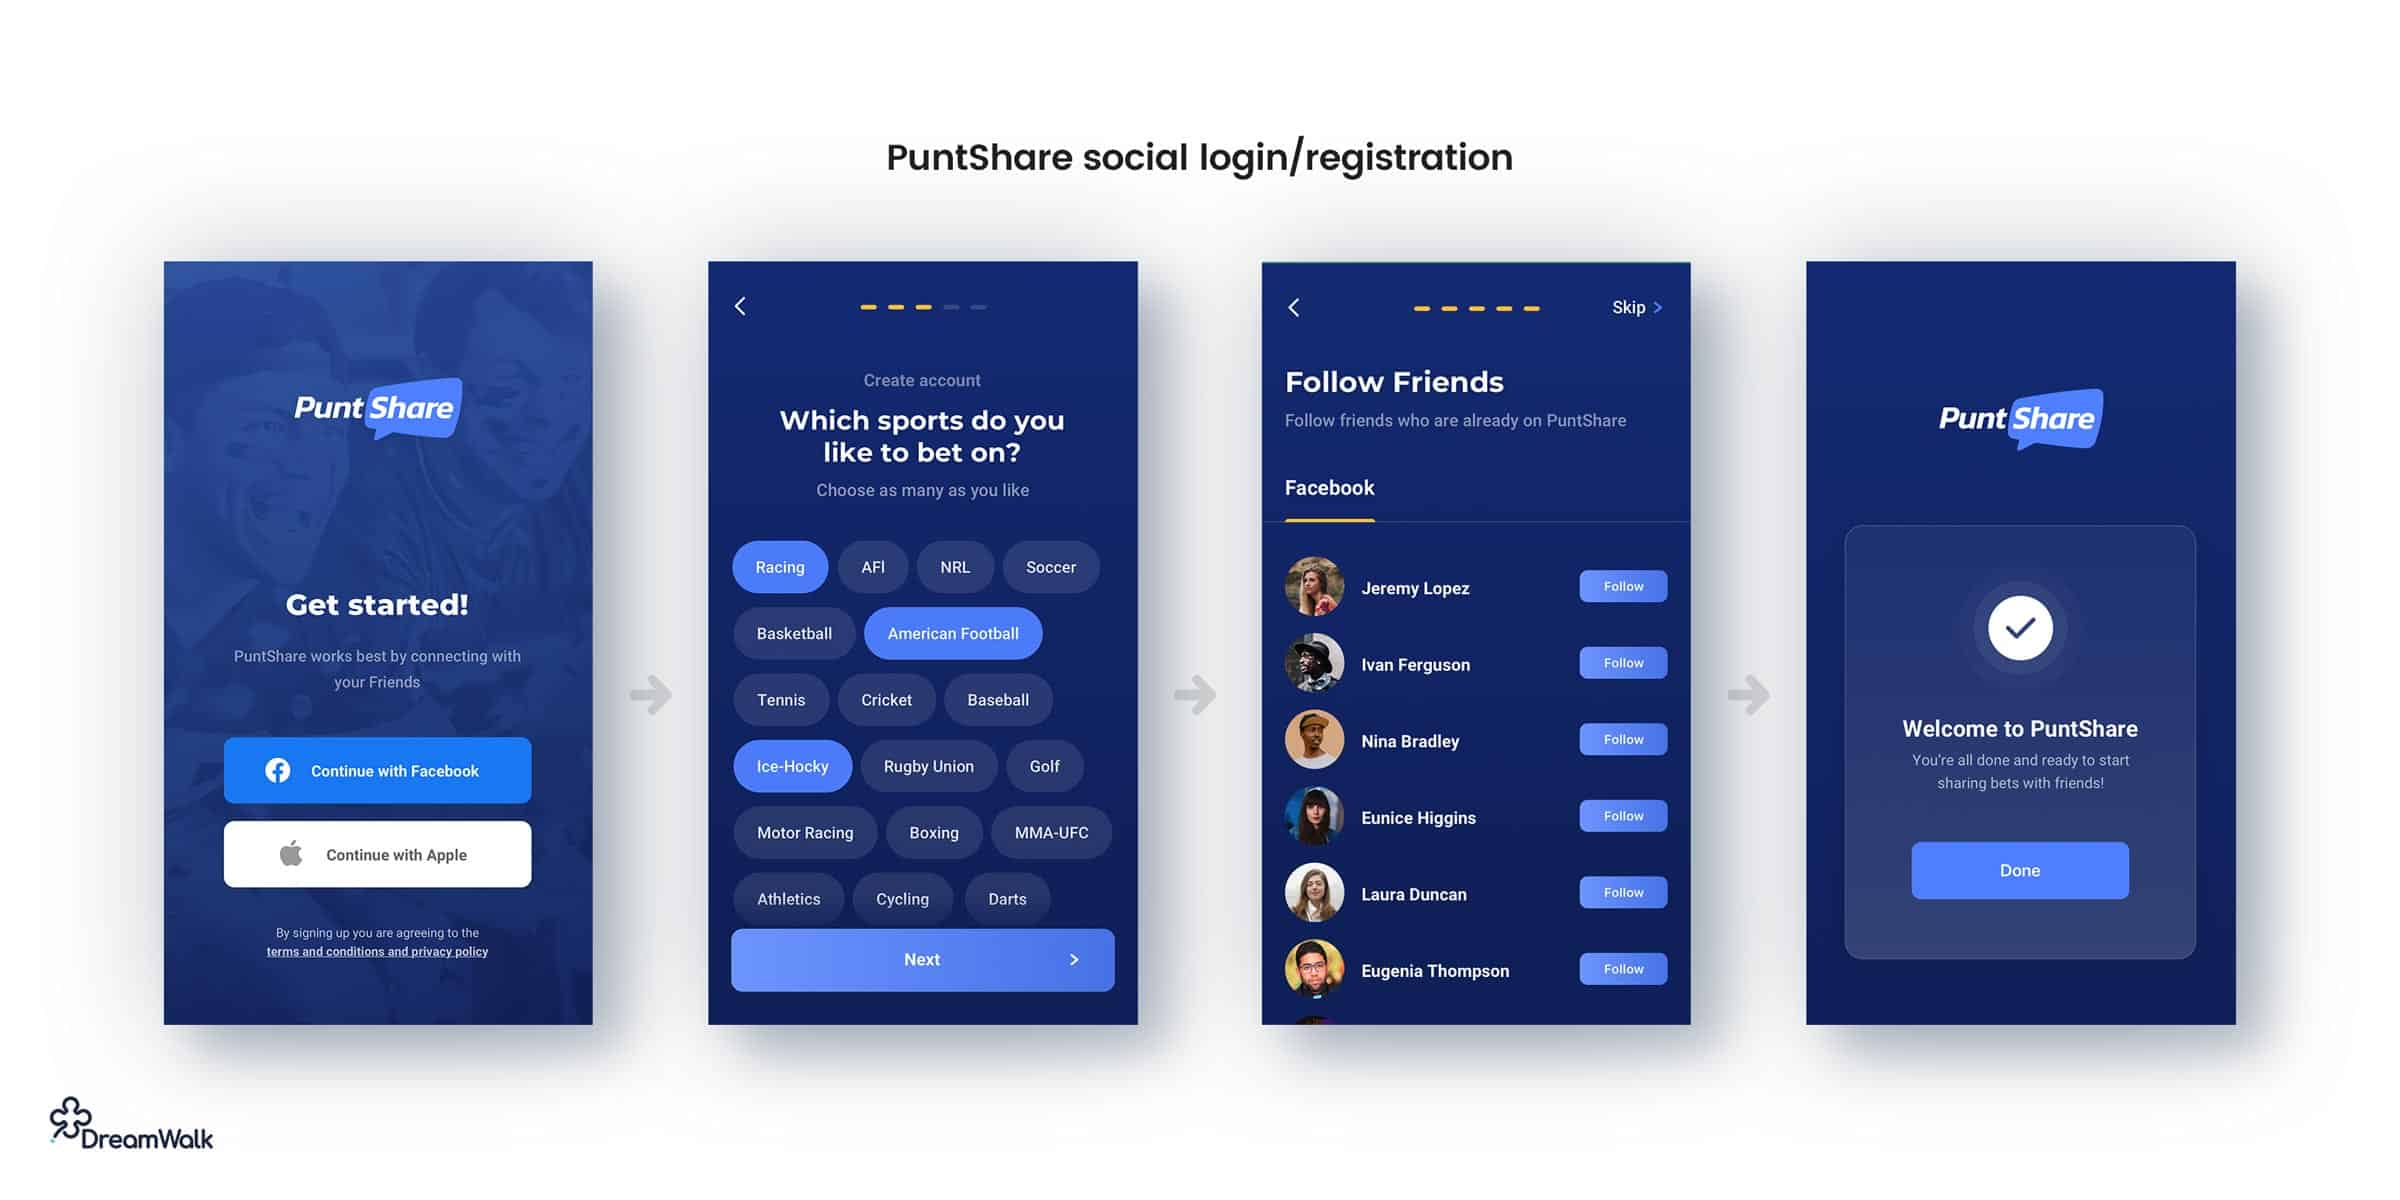 PuntShare-app-social-login-registration-ux-ui-design